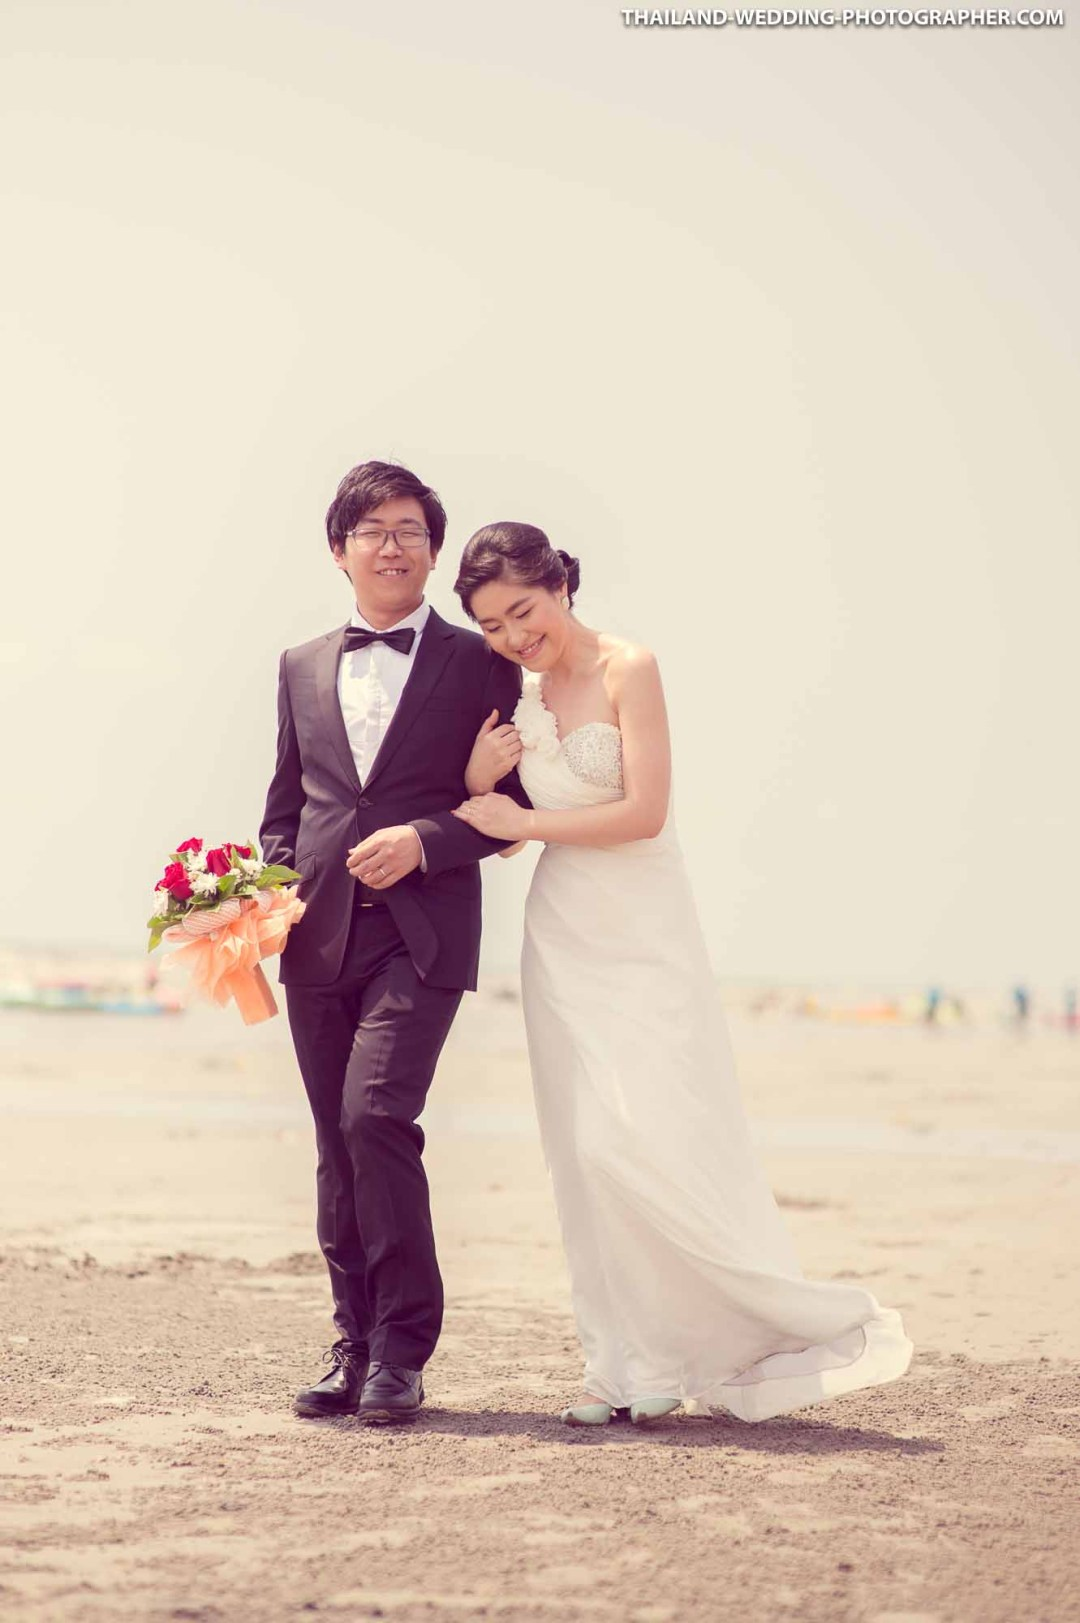 Pattaya Beach Thailand Wedding Photography